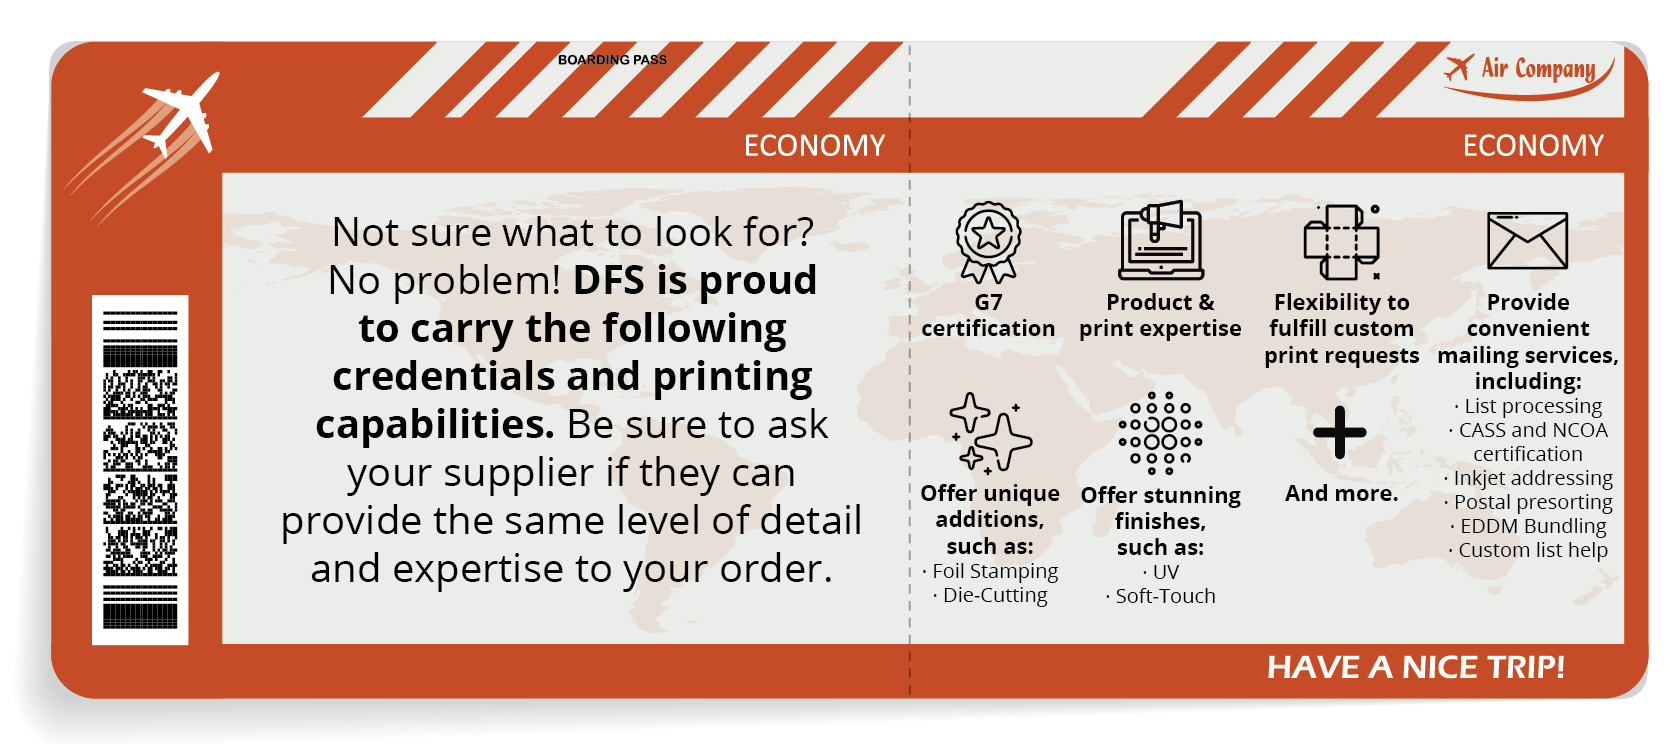 Boarding pass with DFS's printing capabilities and credentials